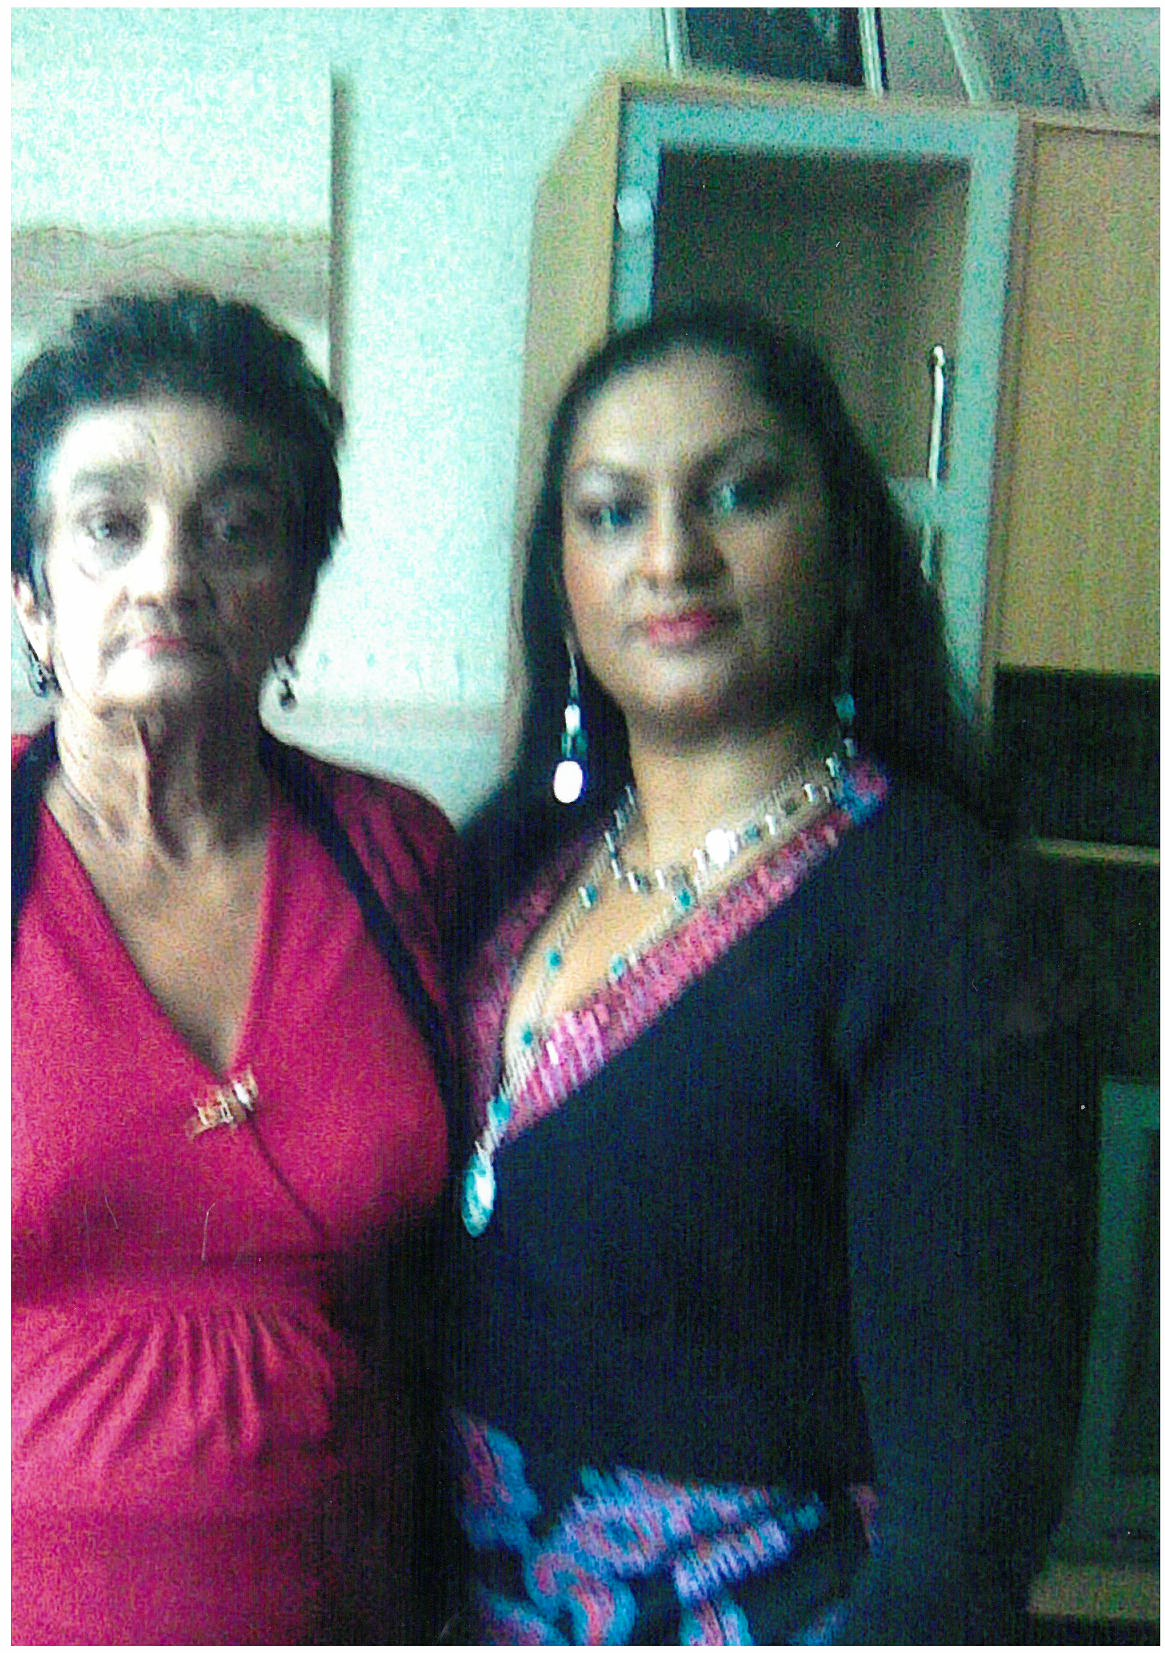 My last photo of me and my mum before she died